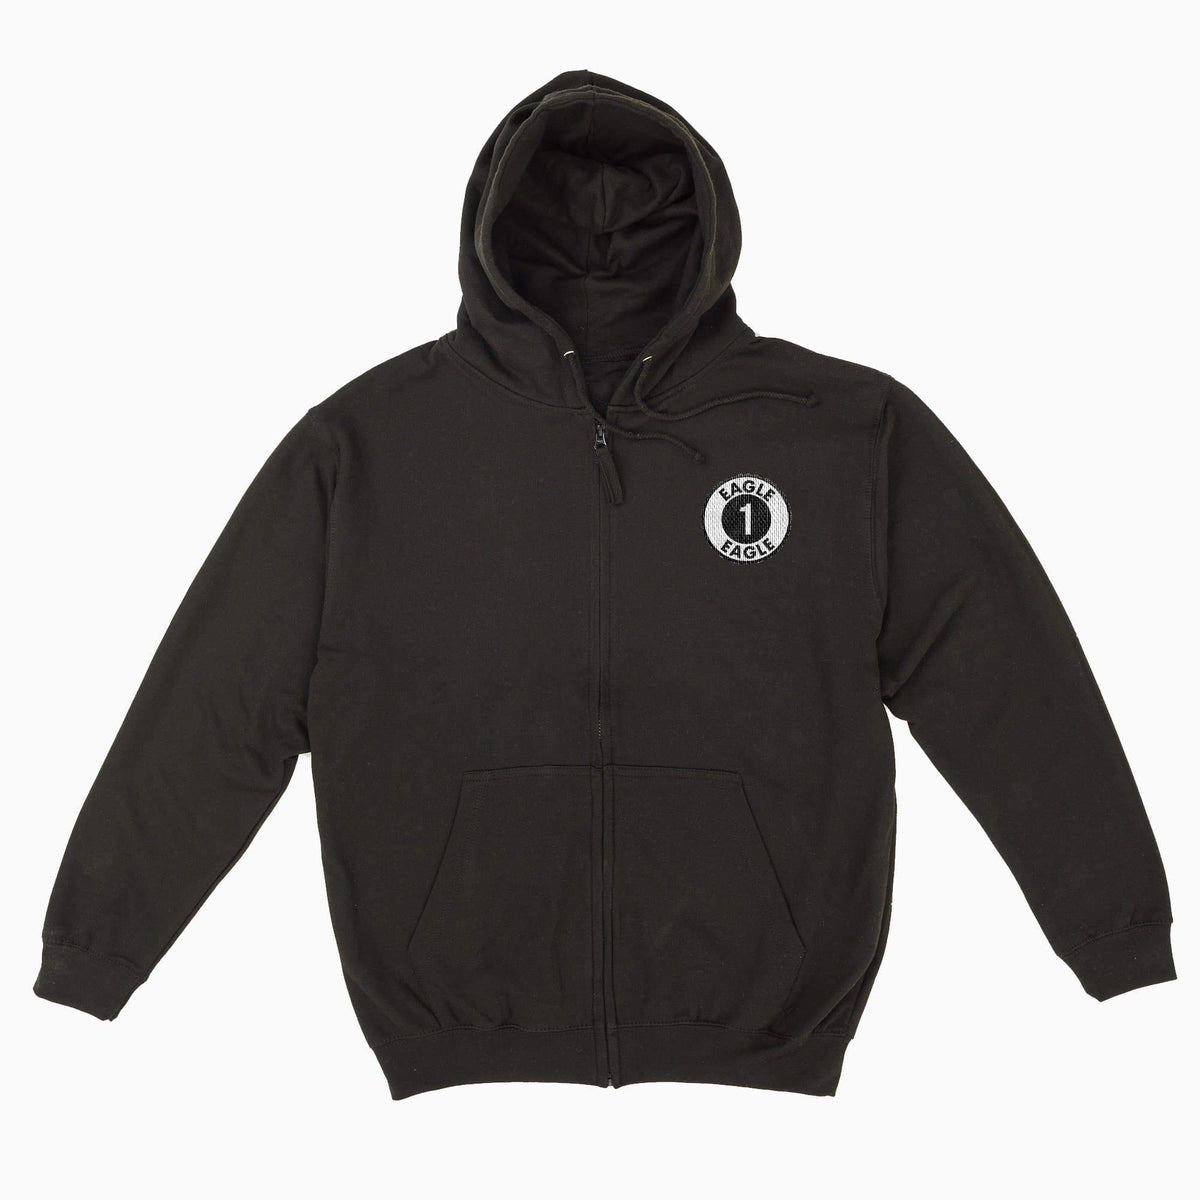 Eagle One Logo Men's Zipped Hoodie with Embroidery - The Gerry Anderson Store